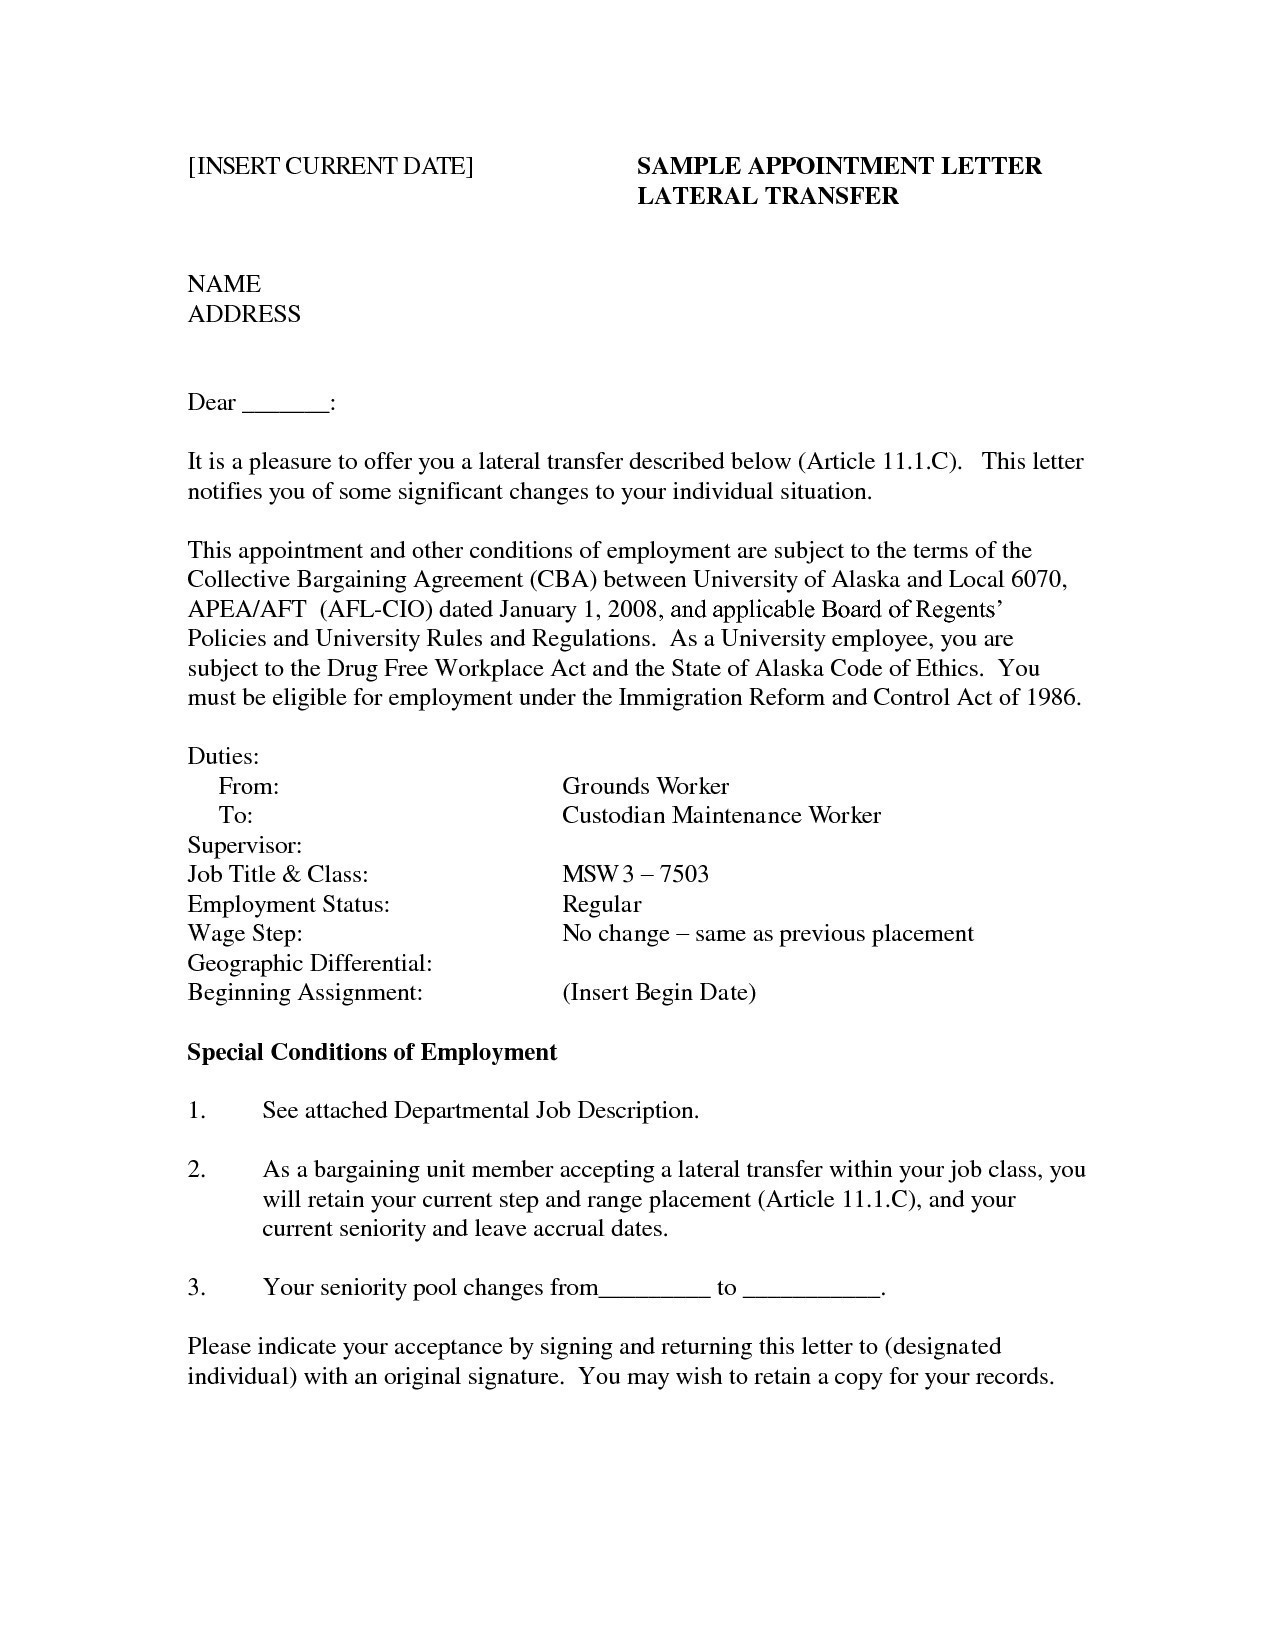 Credentialing approval letter template examples letter for Copies of cover letters for employment